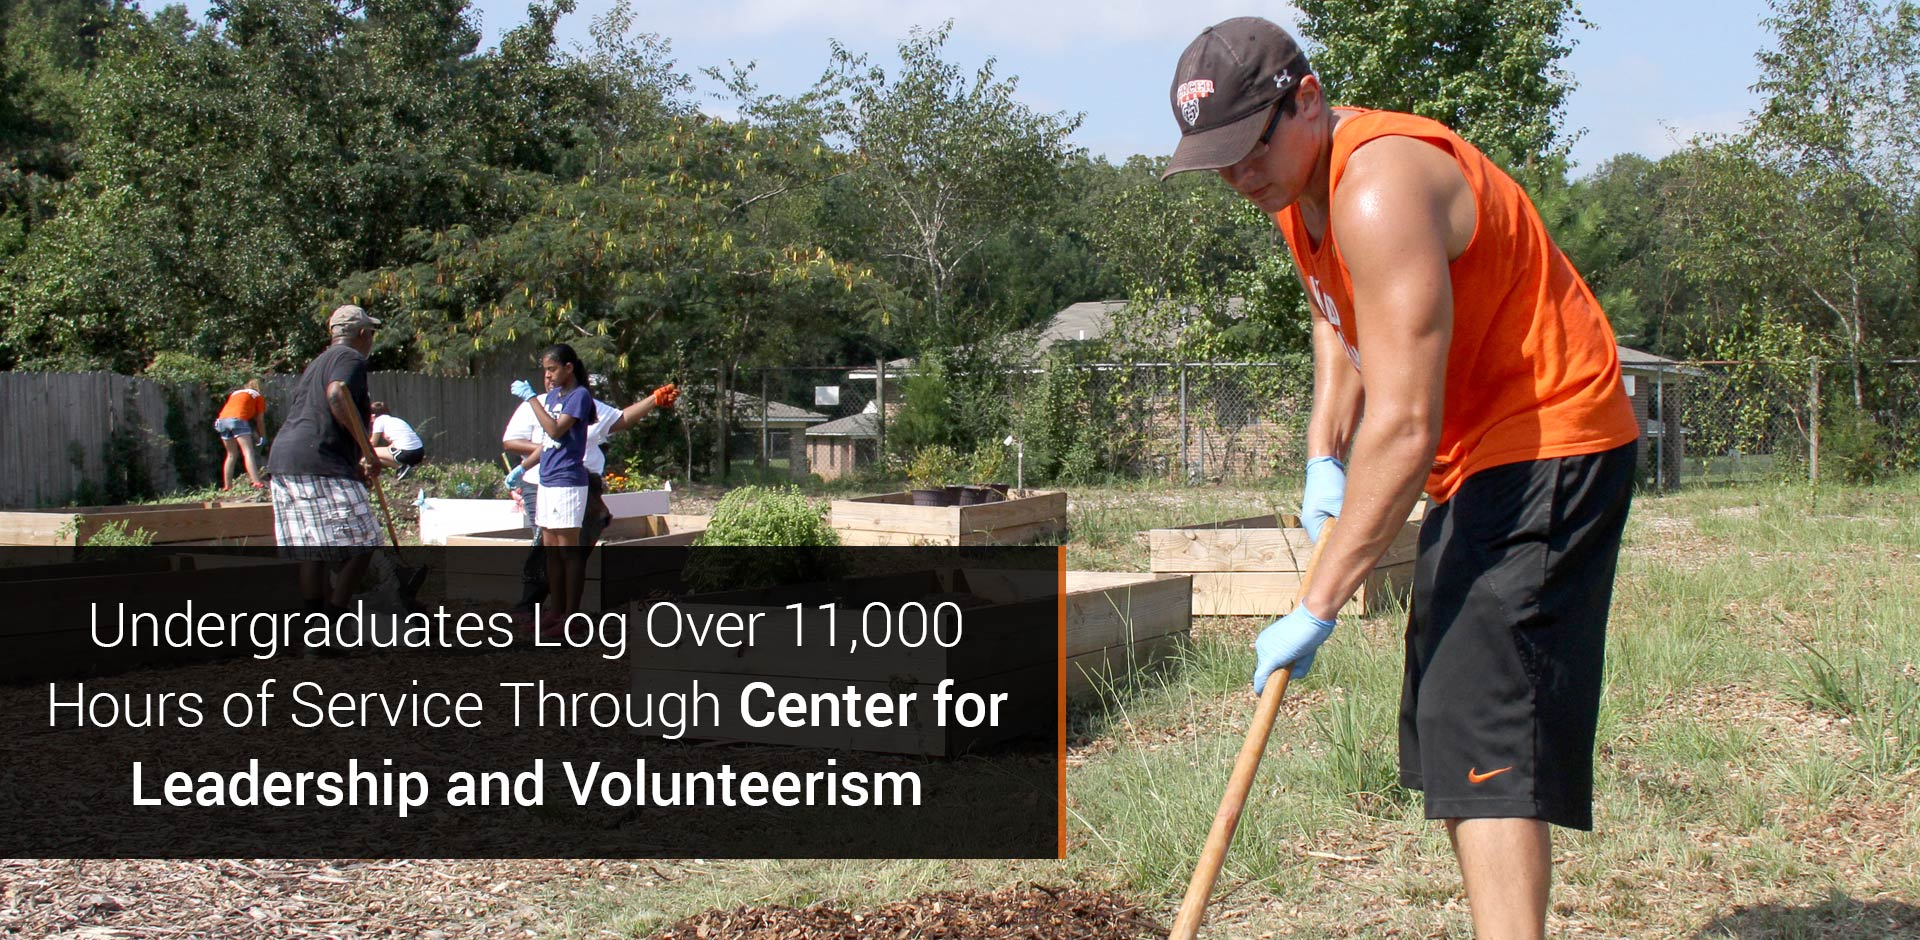 Undergraduates Log Over 11,000 Hours of Service Through Center for Leadership and Volunteerism